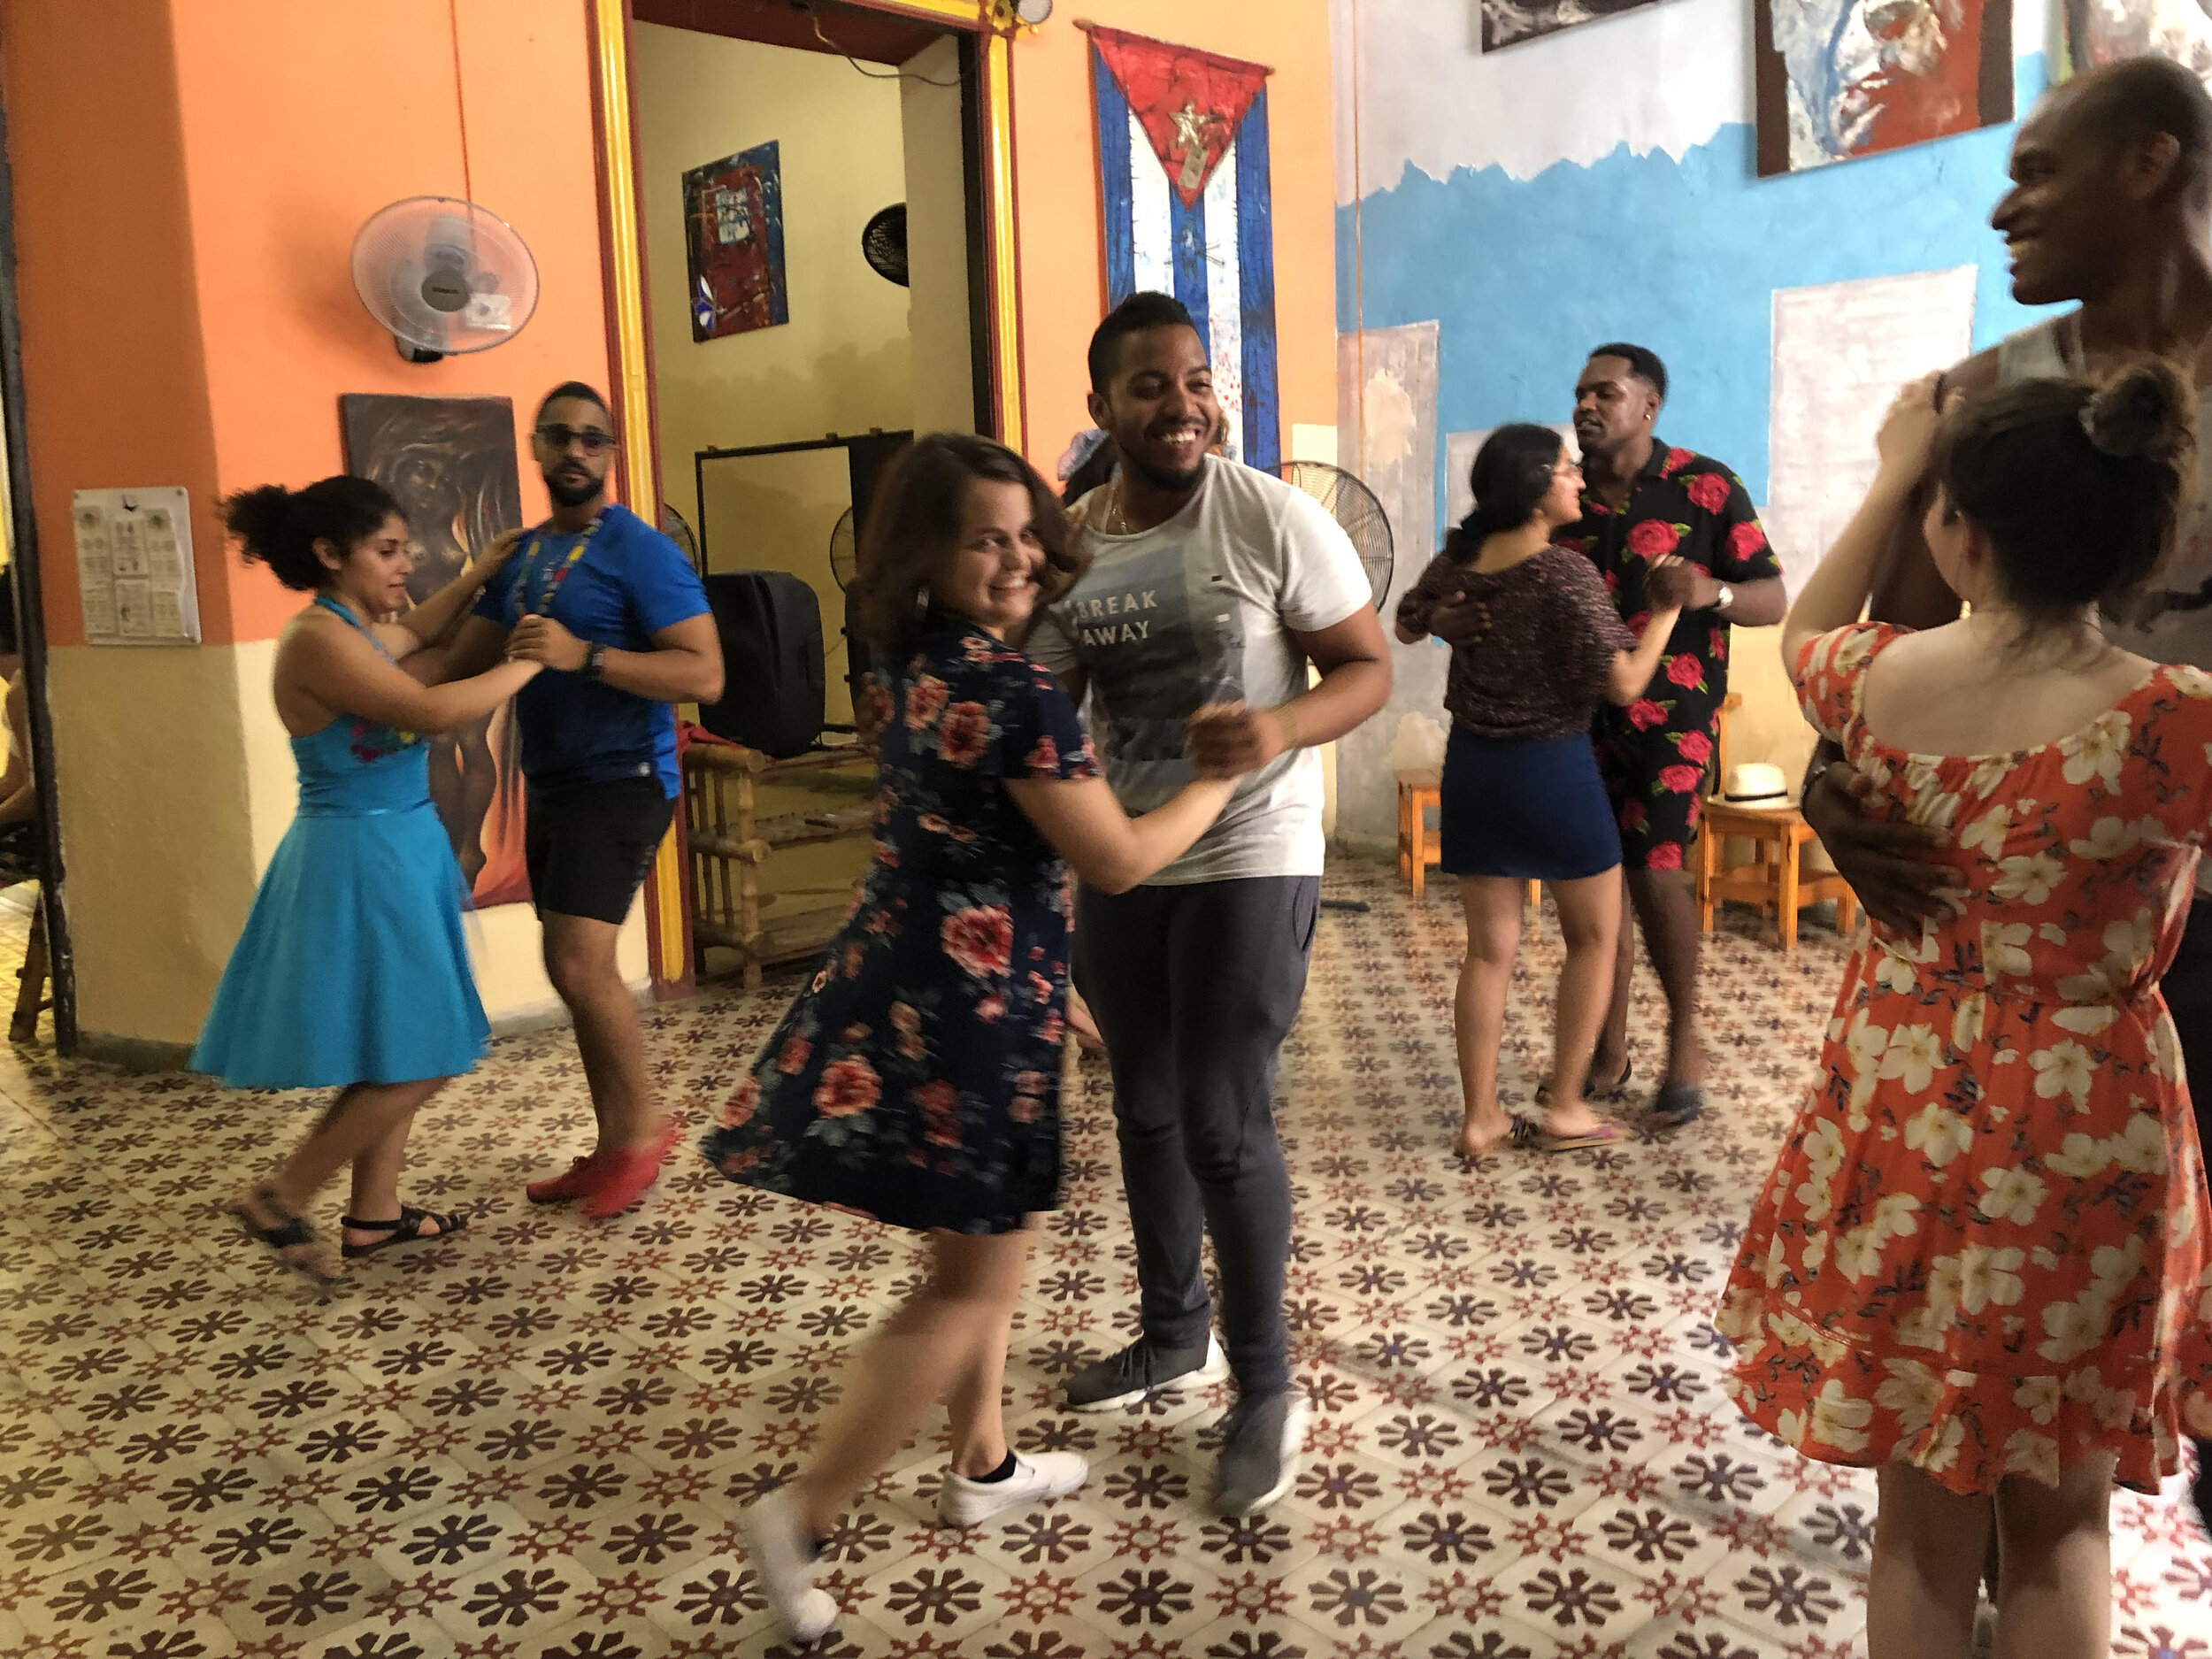 Dancing and much more - - Learn salsa from some of the best dancers in Havana- Practice your new moves at the Havana dance clubs- Attend music lectures with leading experts- Explore Havana in a classic vintage car- Visit the revolutionary sites- Explore art and history in Old Havana- Experience authentic Cuban cuisine